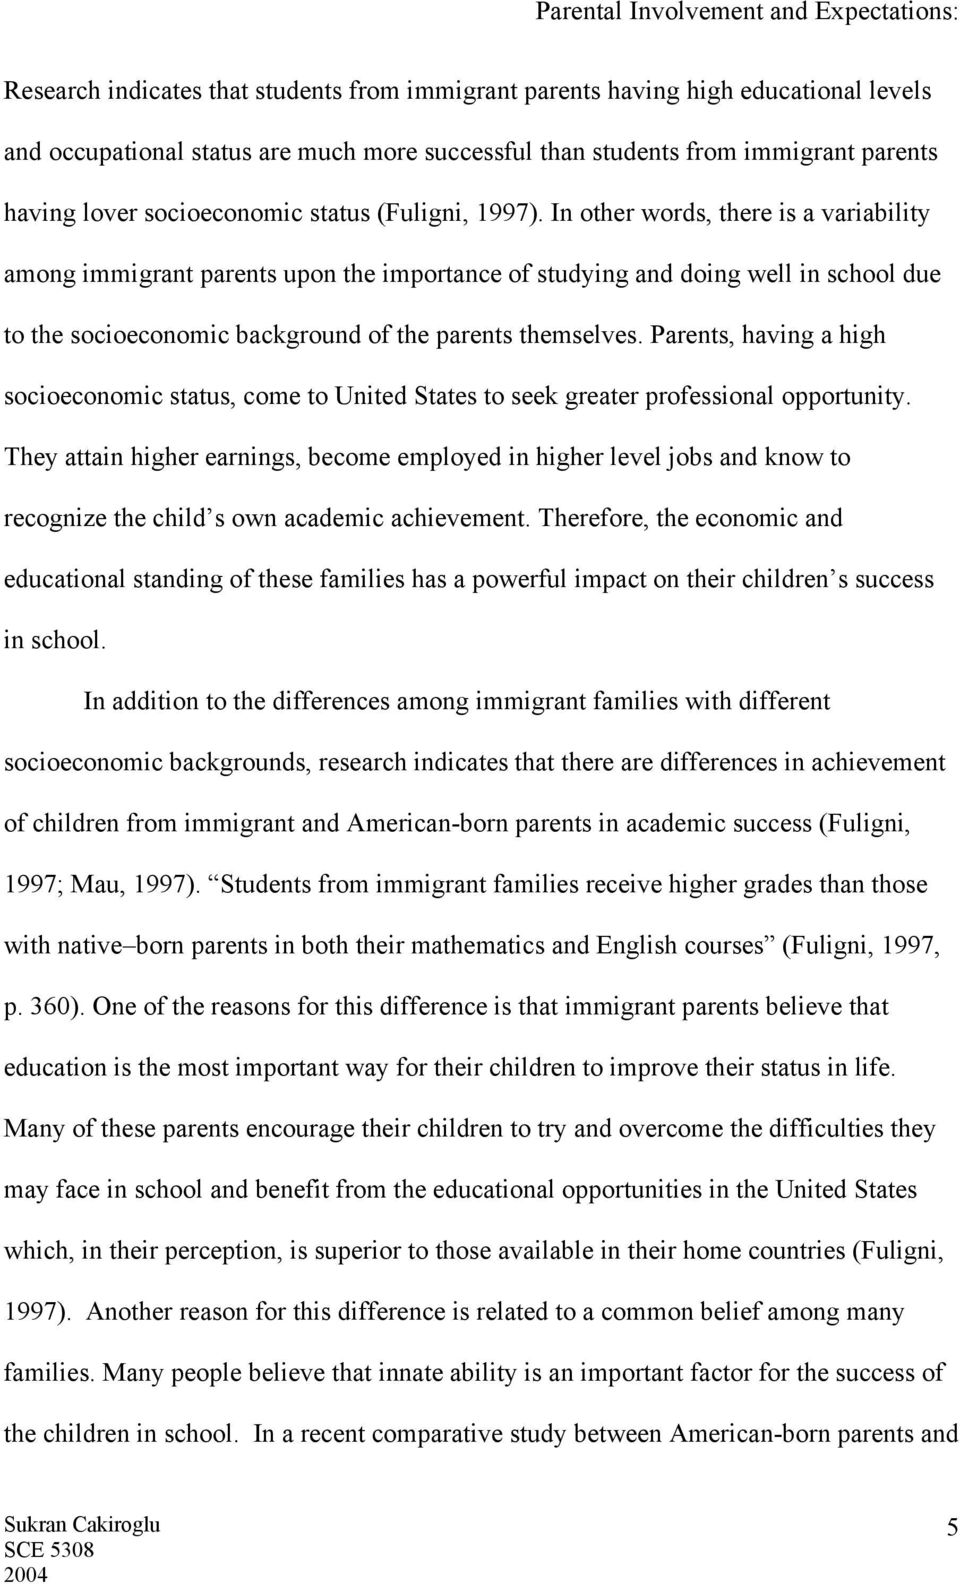 In other words, there is a variability among immigrant parents upon the importance of studying and doing well in school due to the socioeconomic background of the parents themselves.